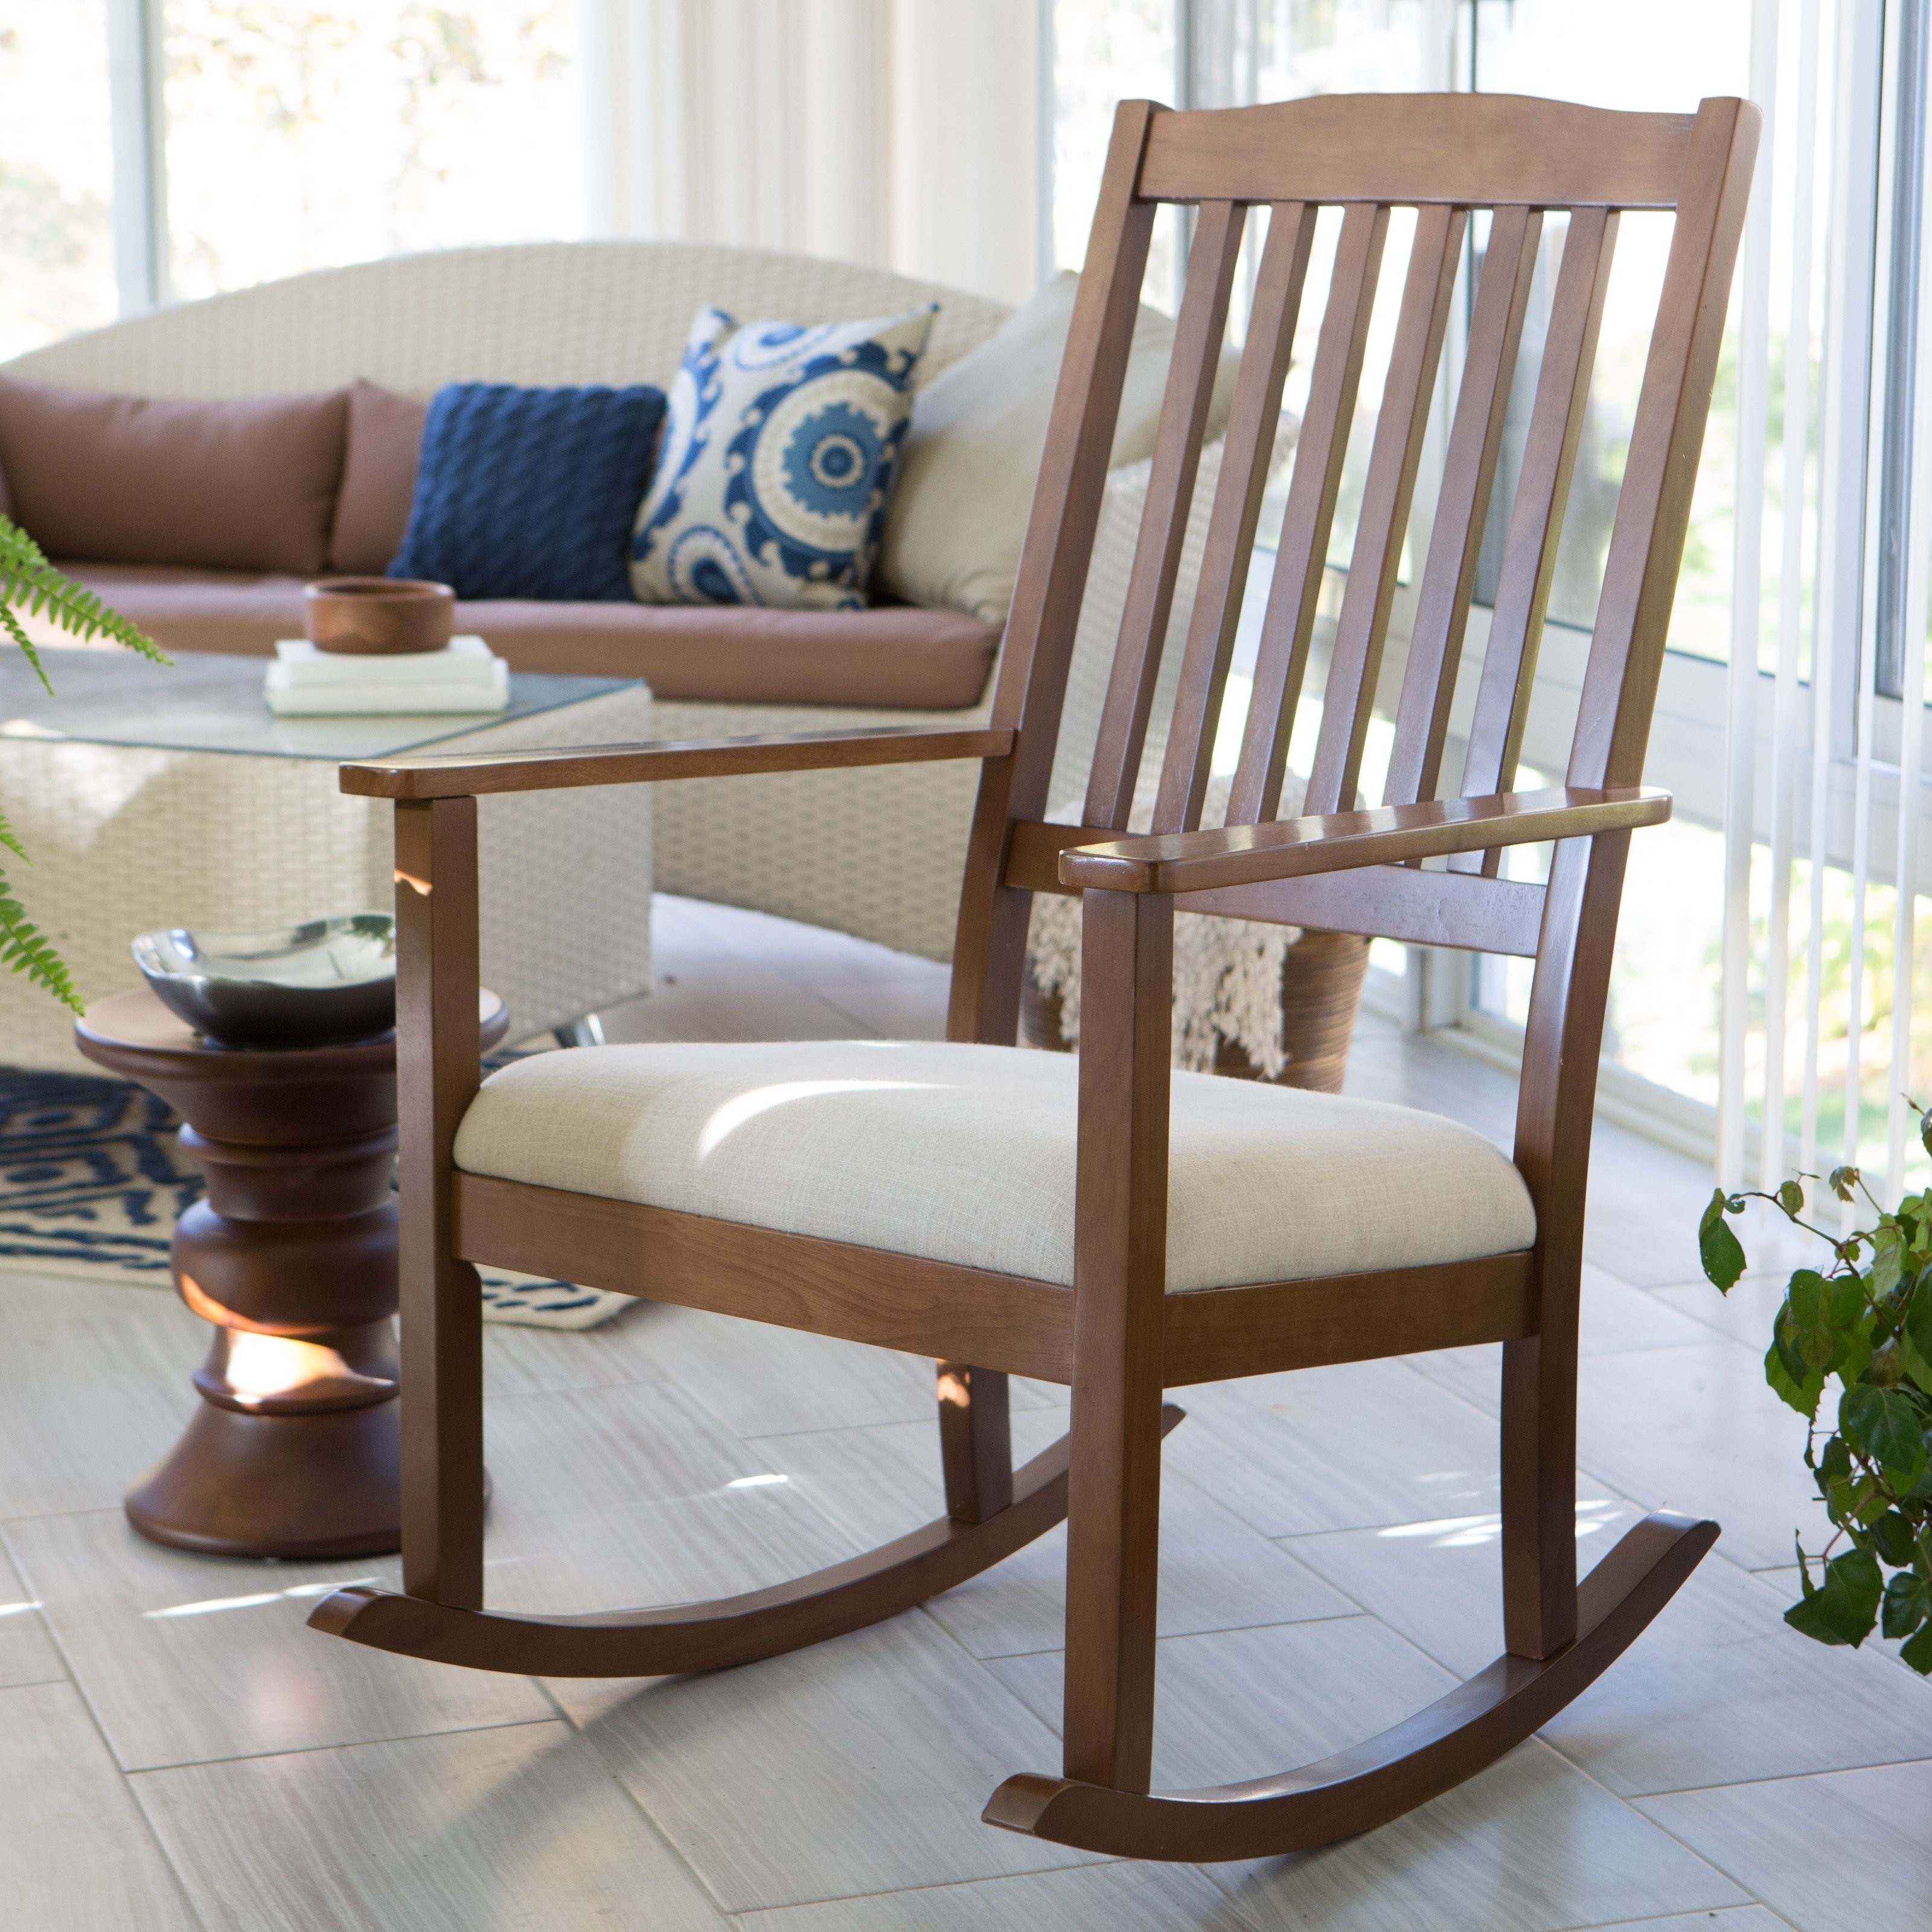 Chair Black Indoor Rocking Chair Black Patio Rocking Chairs Black Pertaining To Patio Wooden Rocking Chairs (#2 of 15)